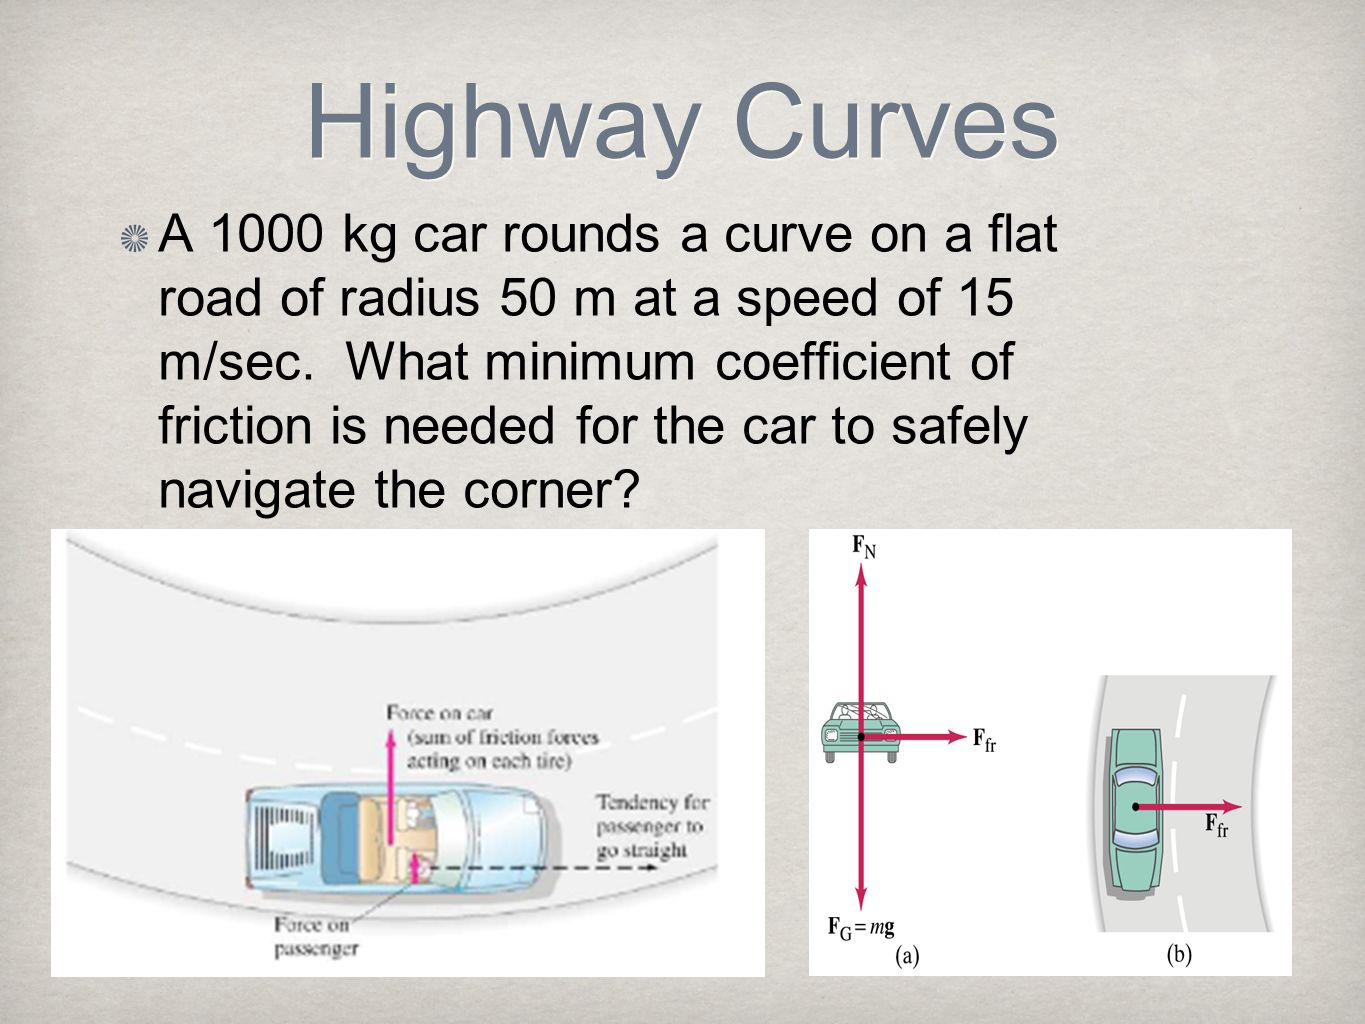 Highway Curves A 1000 kg car rounds a curve on a flat road of radius 50 m at a speed of 15 m/sec. What minimum coefficient of friction is needed for t